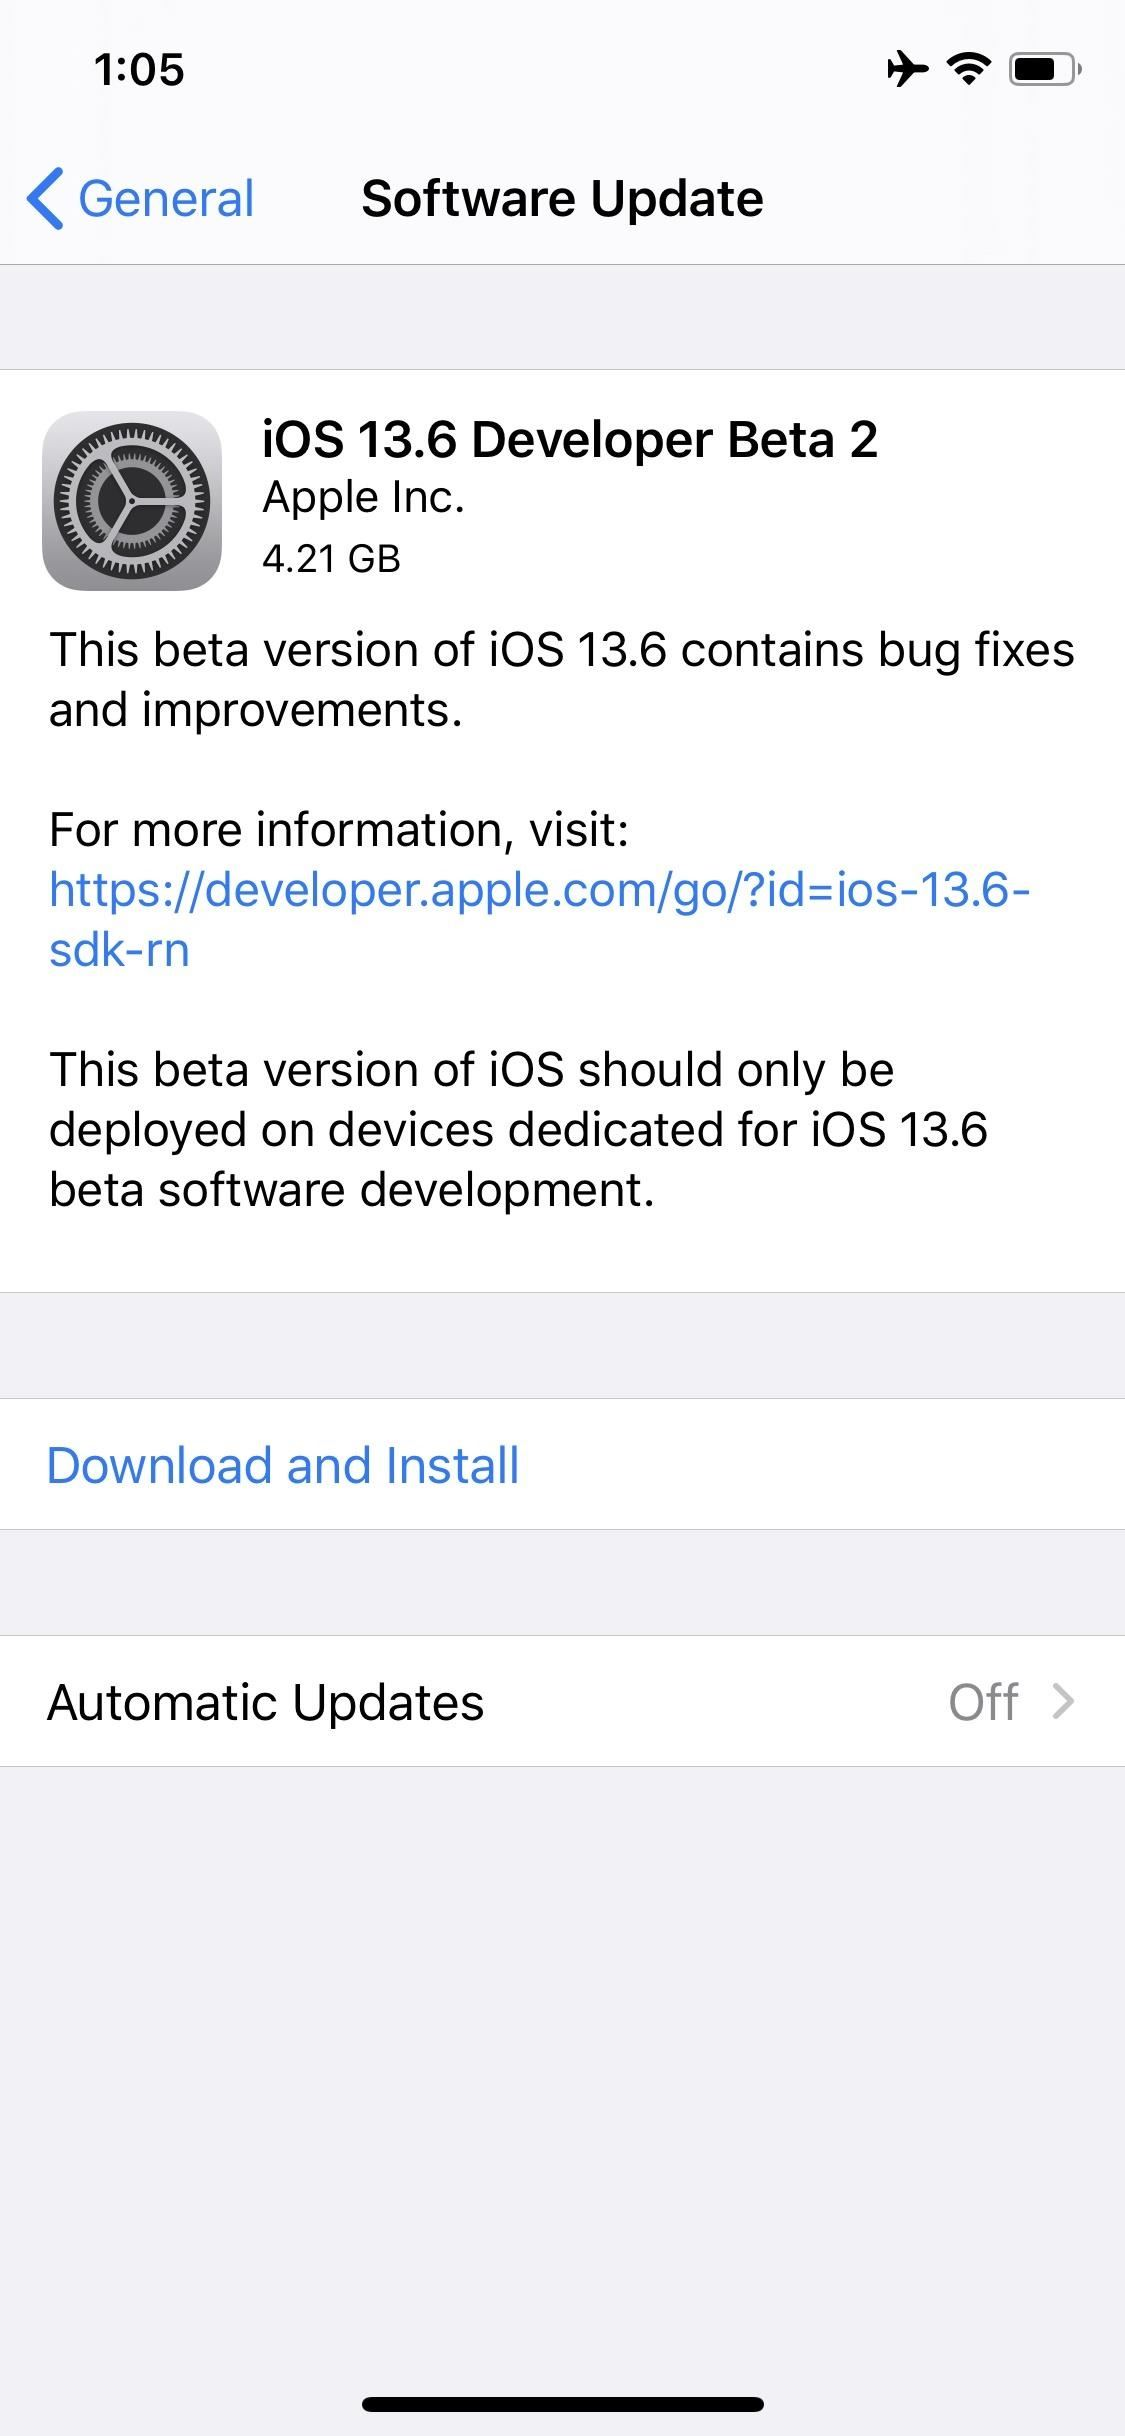 Apple Releases iOS 13.6 Developer Beta 2 for iPhone, Includes New HealthKit Data Types for Symptom Tracking